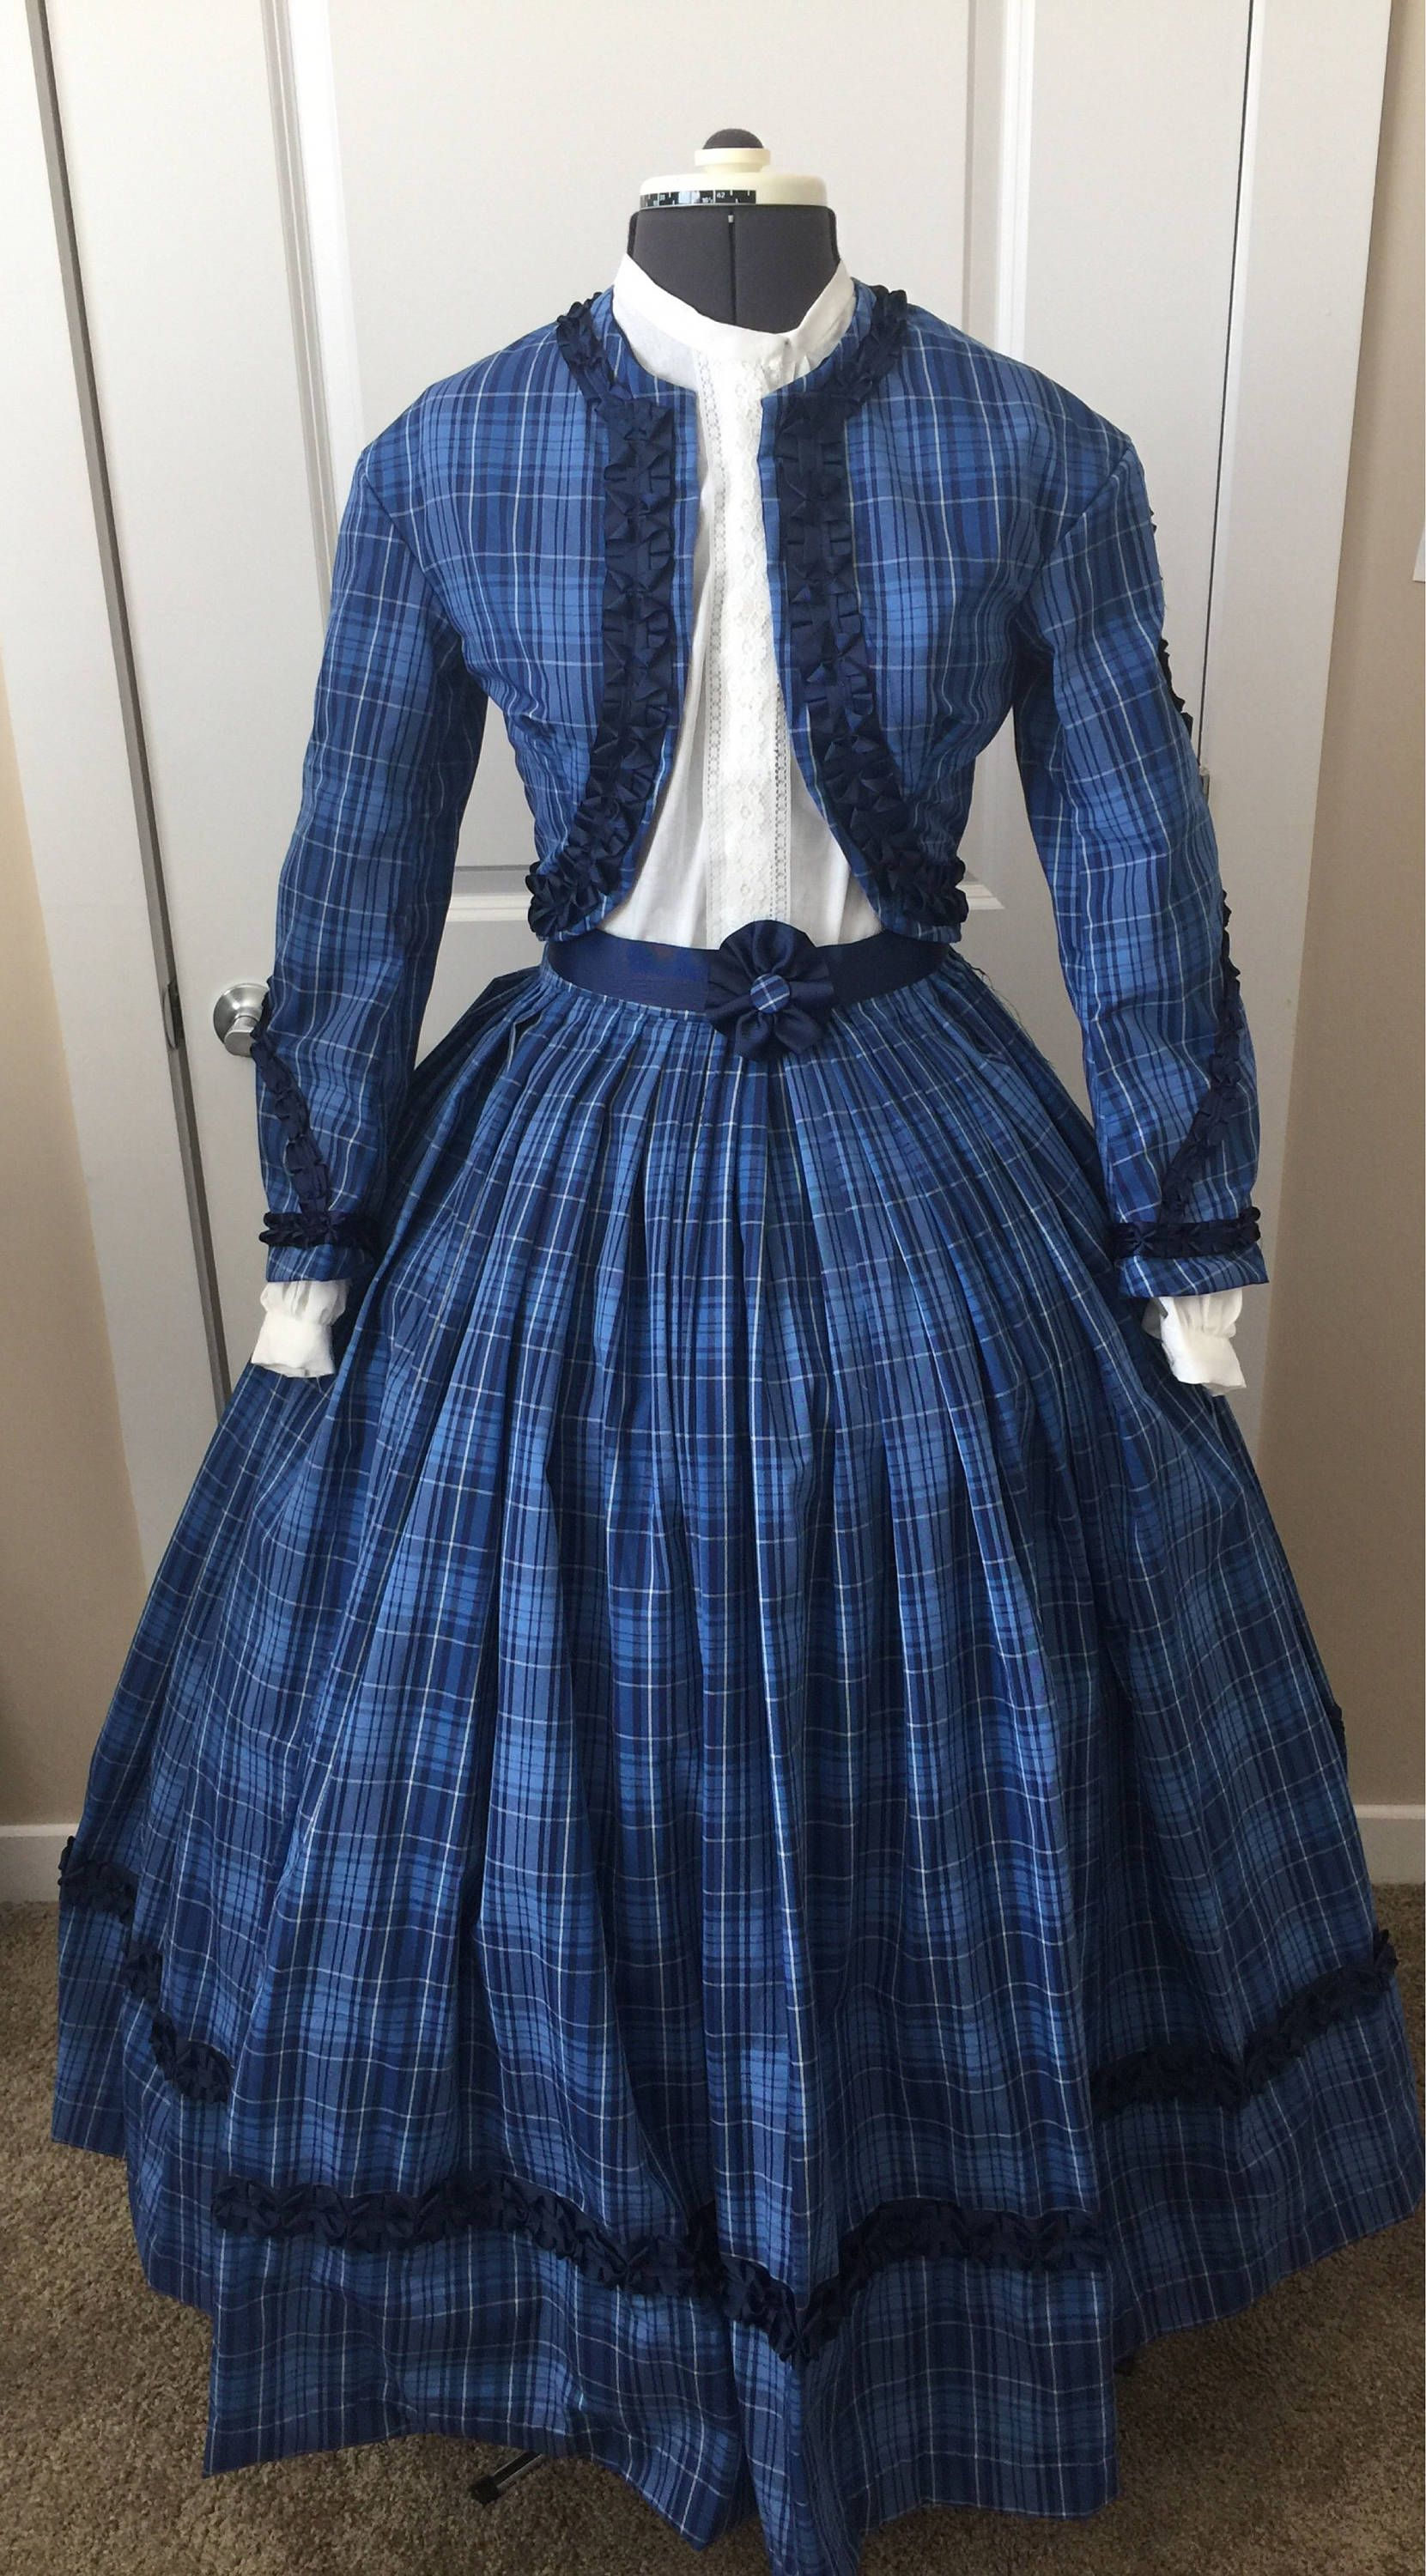 Custom 4 Piece Civil War High Fashion Outfit Southern Belle #dressesfromthesouthernbelleera